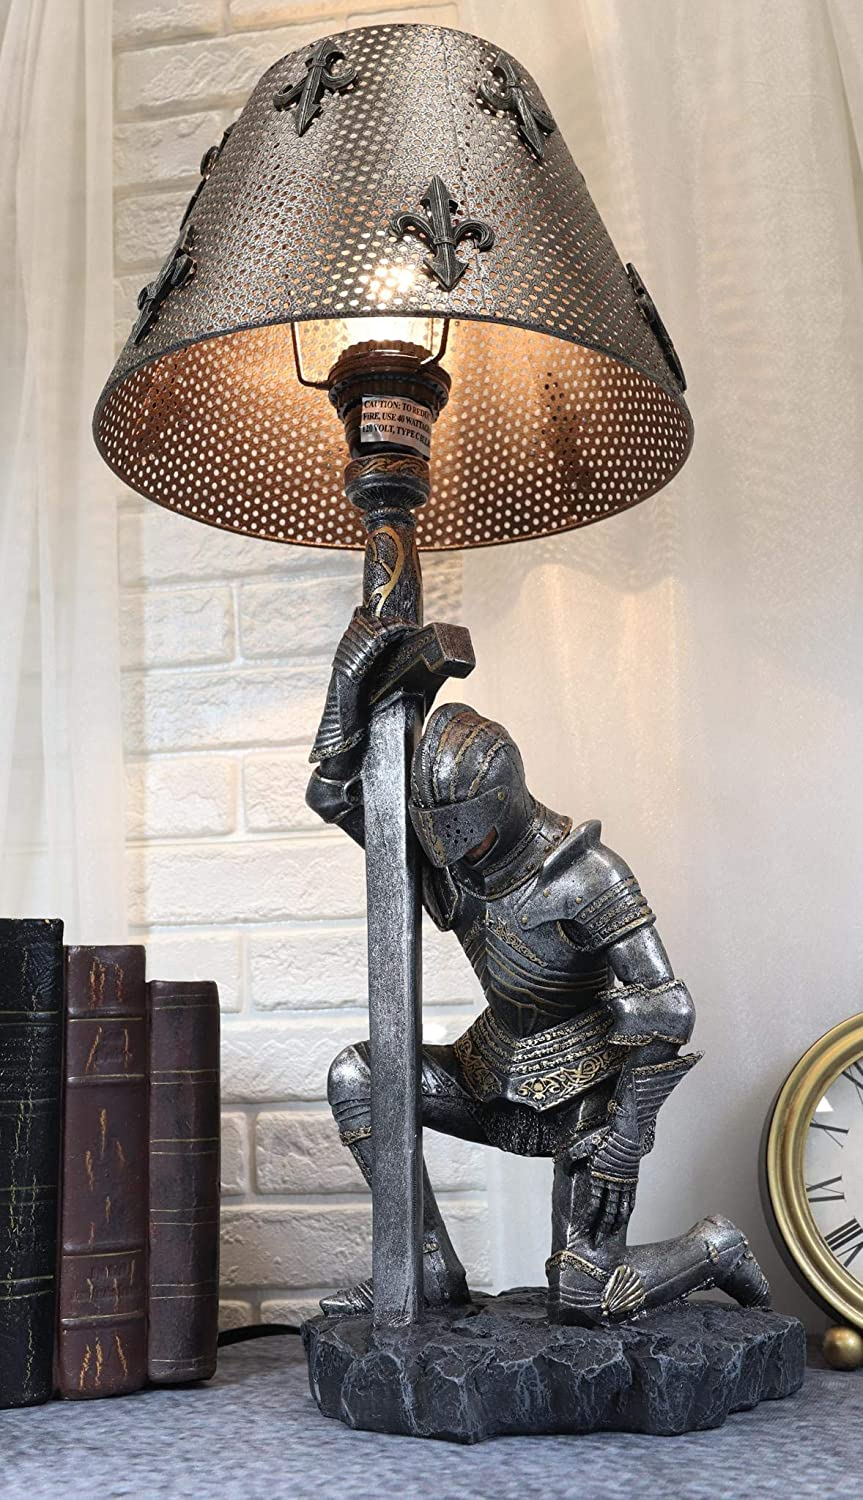 Ebros Gift The Accolade Medieval Sui Kneeling 5% OFF Knight Chivalry of San Francisco Mall